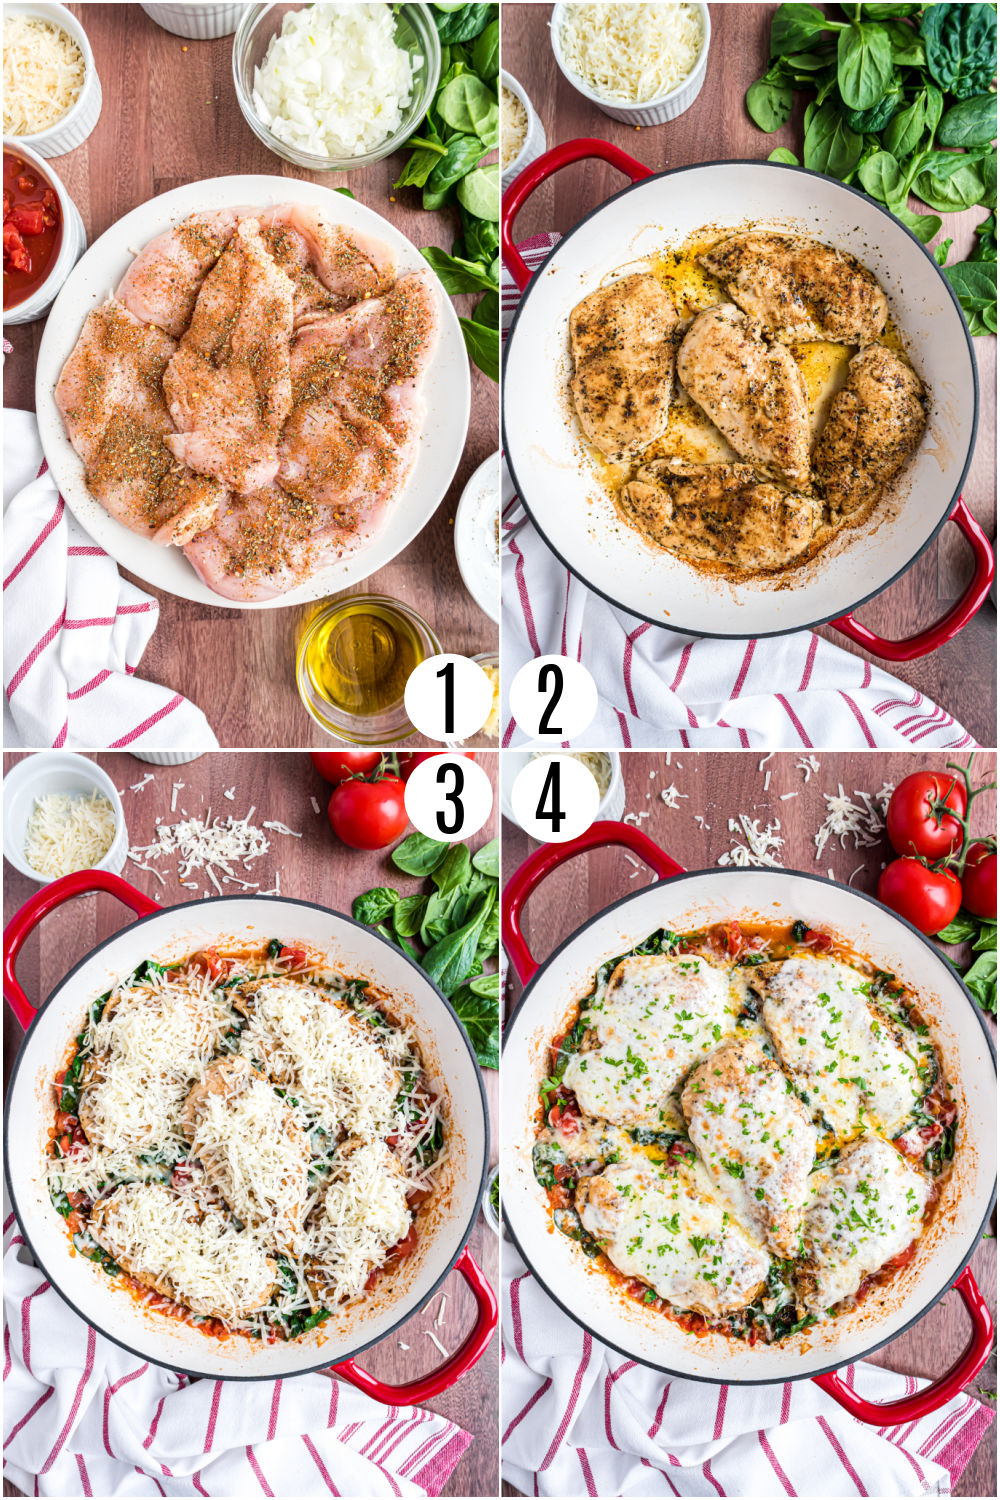 Step by step photos showing how to make chicken spinach skillet.